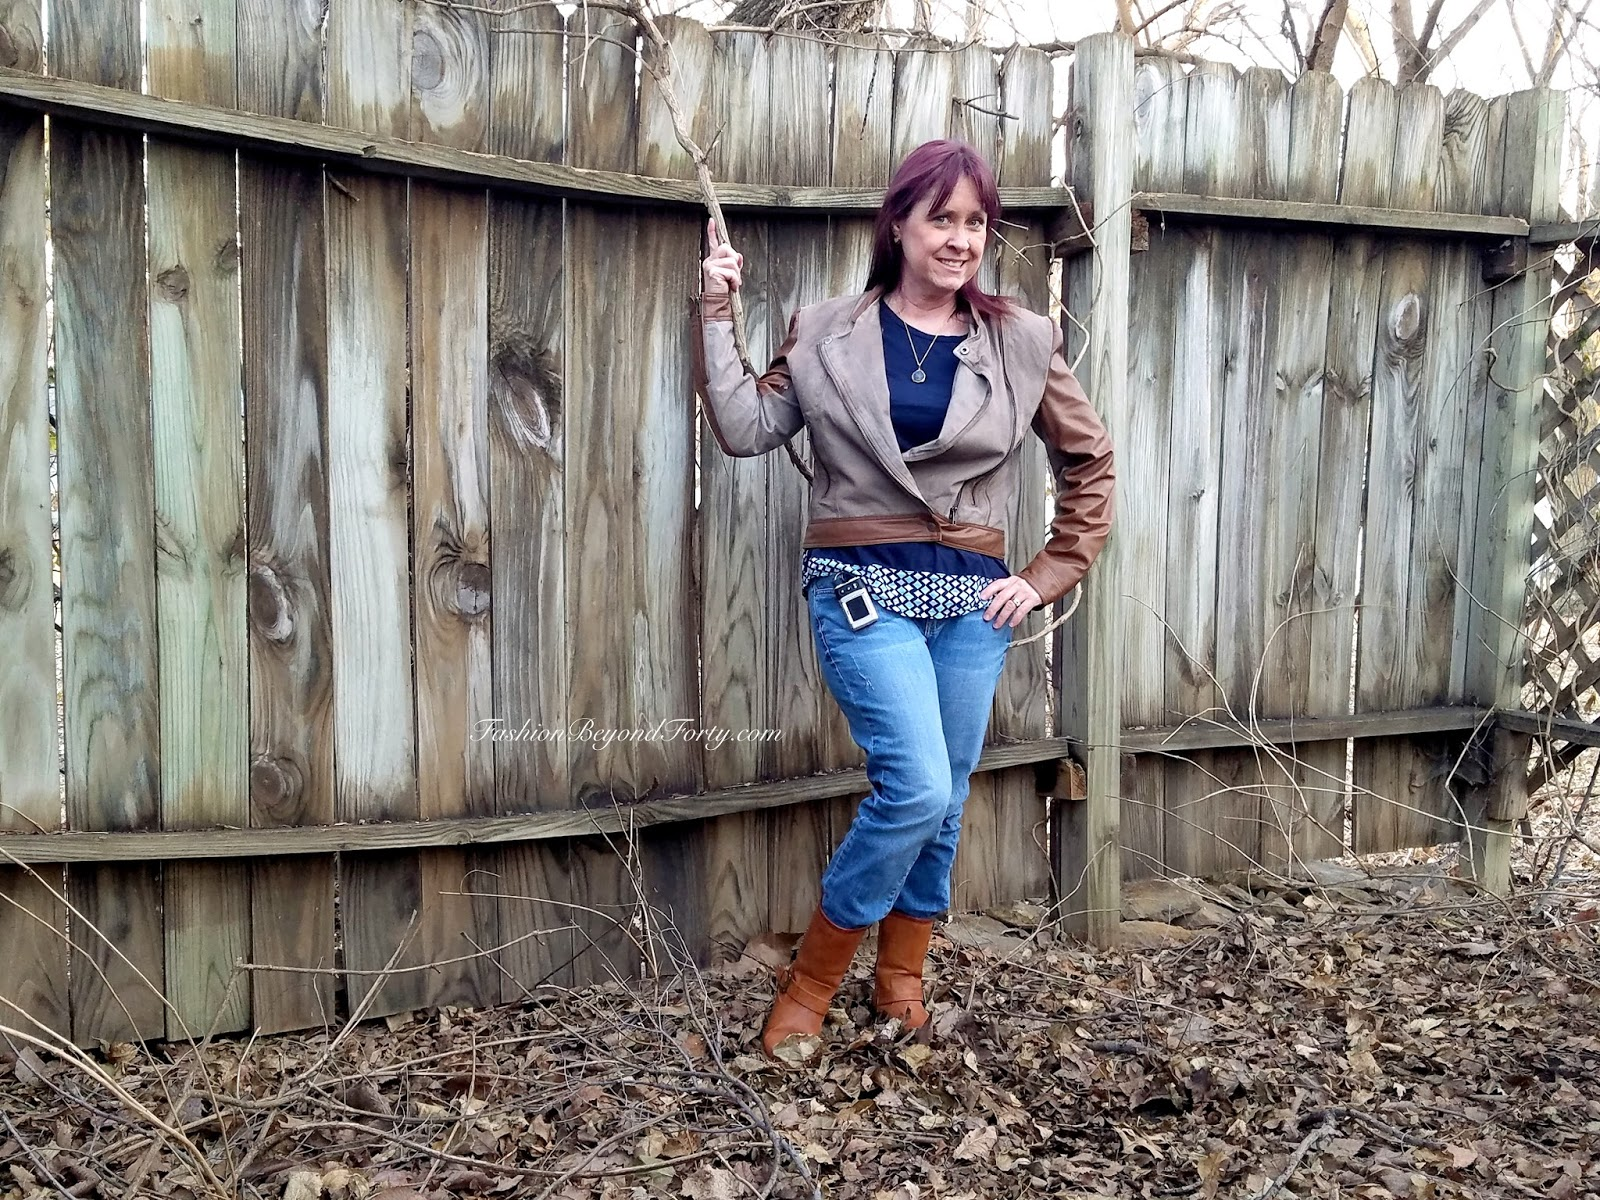 What I Am Wearing Today #23 Fashionably Rustic In Jeans and Vegan Leather